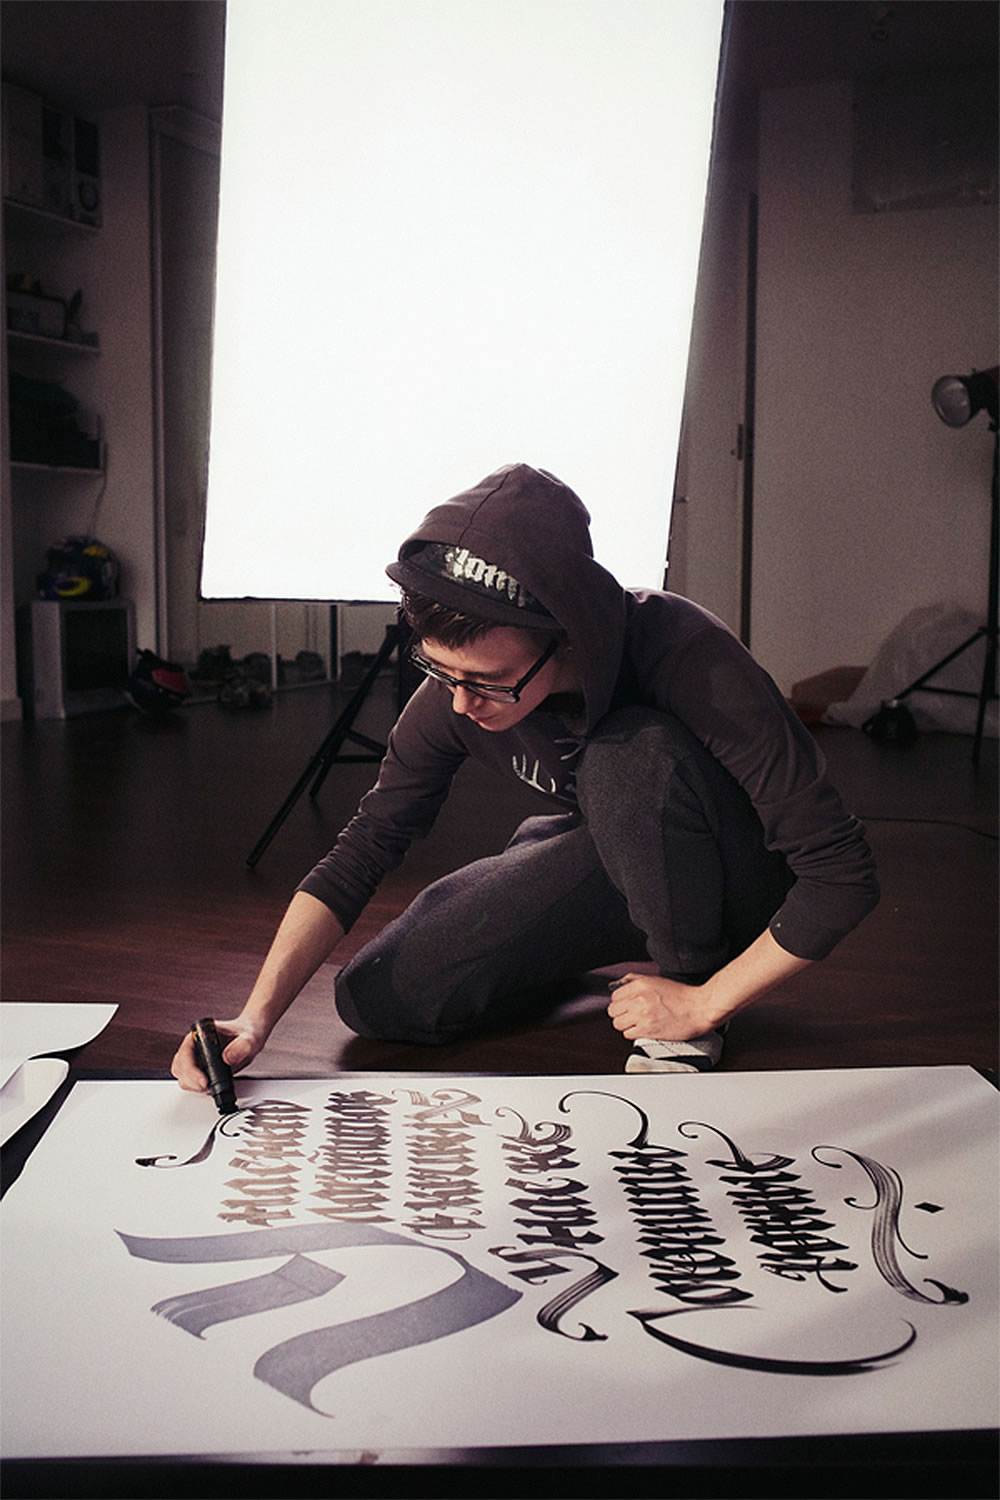 A Passion for Calligraphy